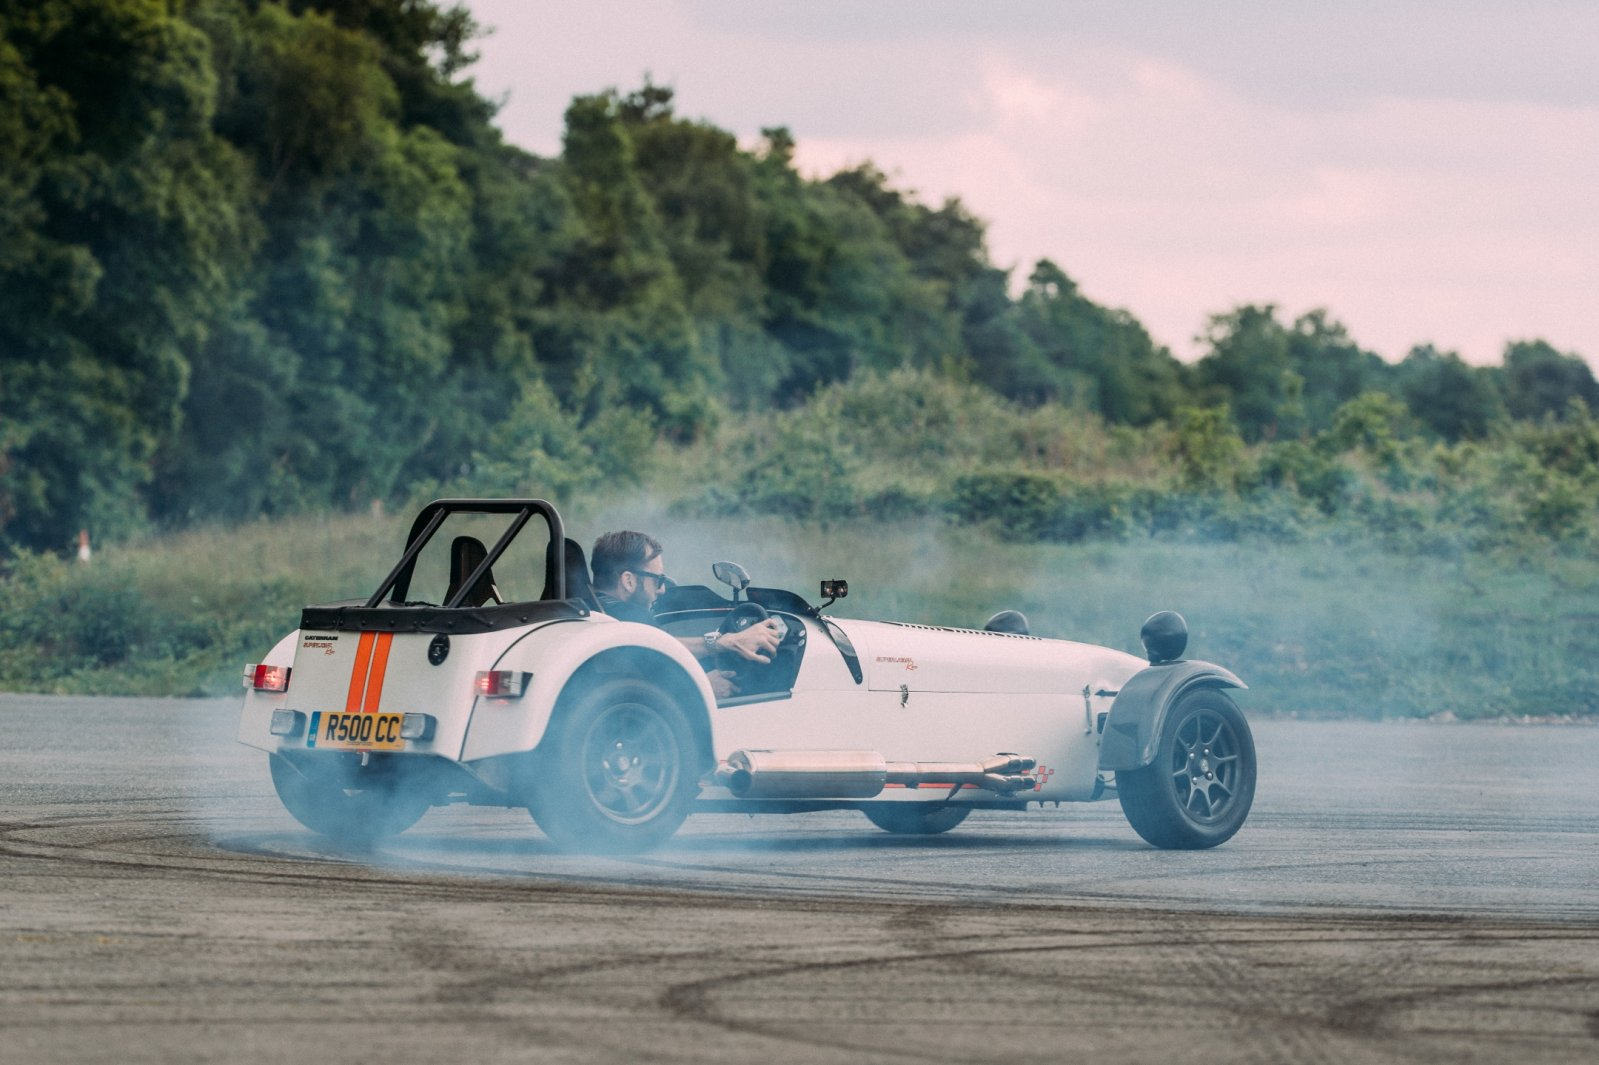 140773-caterham-superlight-r500-2.jpg